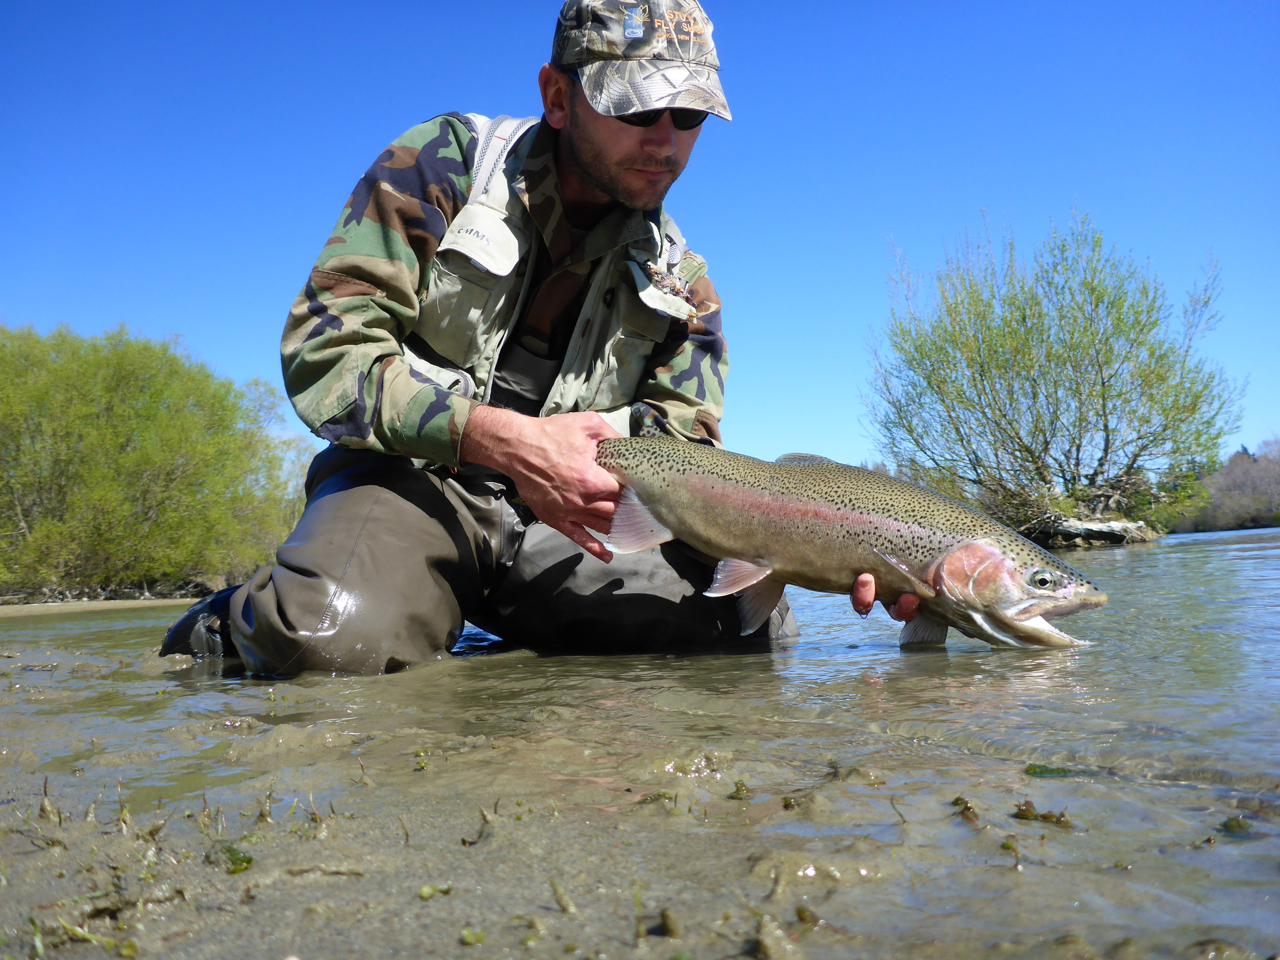 A good rainbow from the main river.. I had great sight fishing  on the edges for browns and rainbows the weekend before the season opened. (Clutha is open all year!)